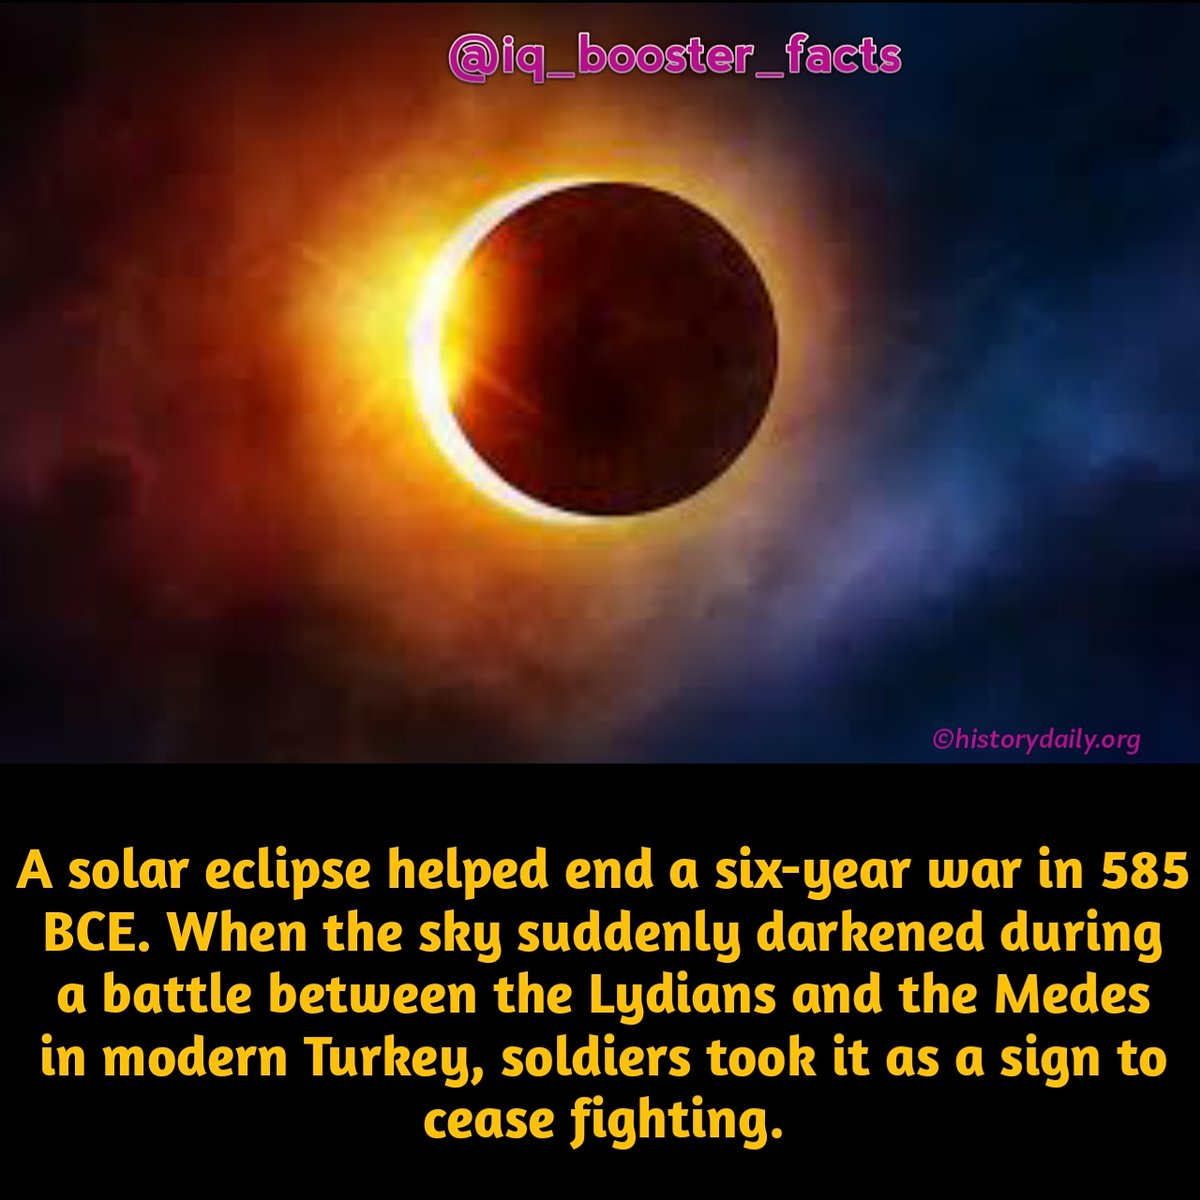 #solar #eclipse #solareclipse #helped #war #585 #BCE #sky #darkened #battle #between #Lydians #Medes #Turkey #soldiers #cease #fighting #history #explore #interstingfacts #ancientfacts #incridiblefacts #god #sign #followus #wethefactsbooster #wetheiqbooster #Iq_booster_facts